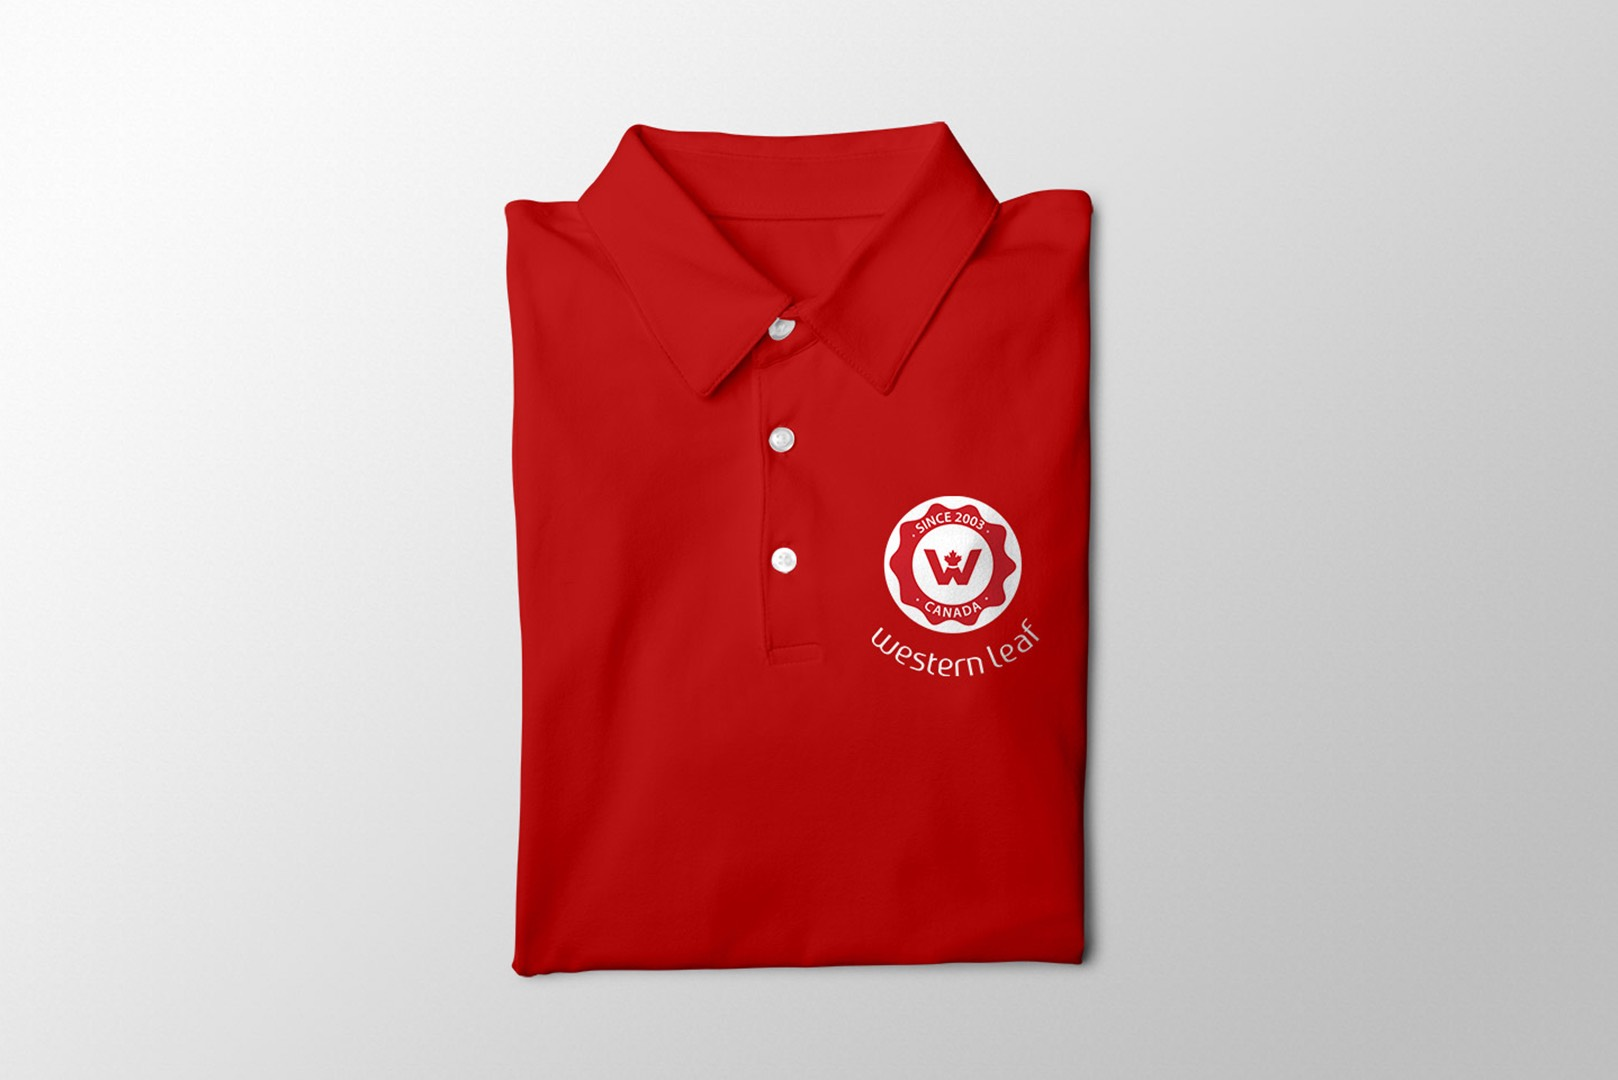 uniform, shirt and corporate identity design